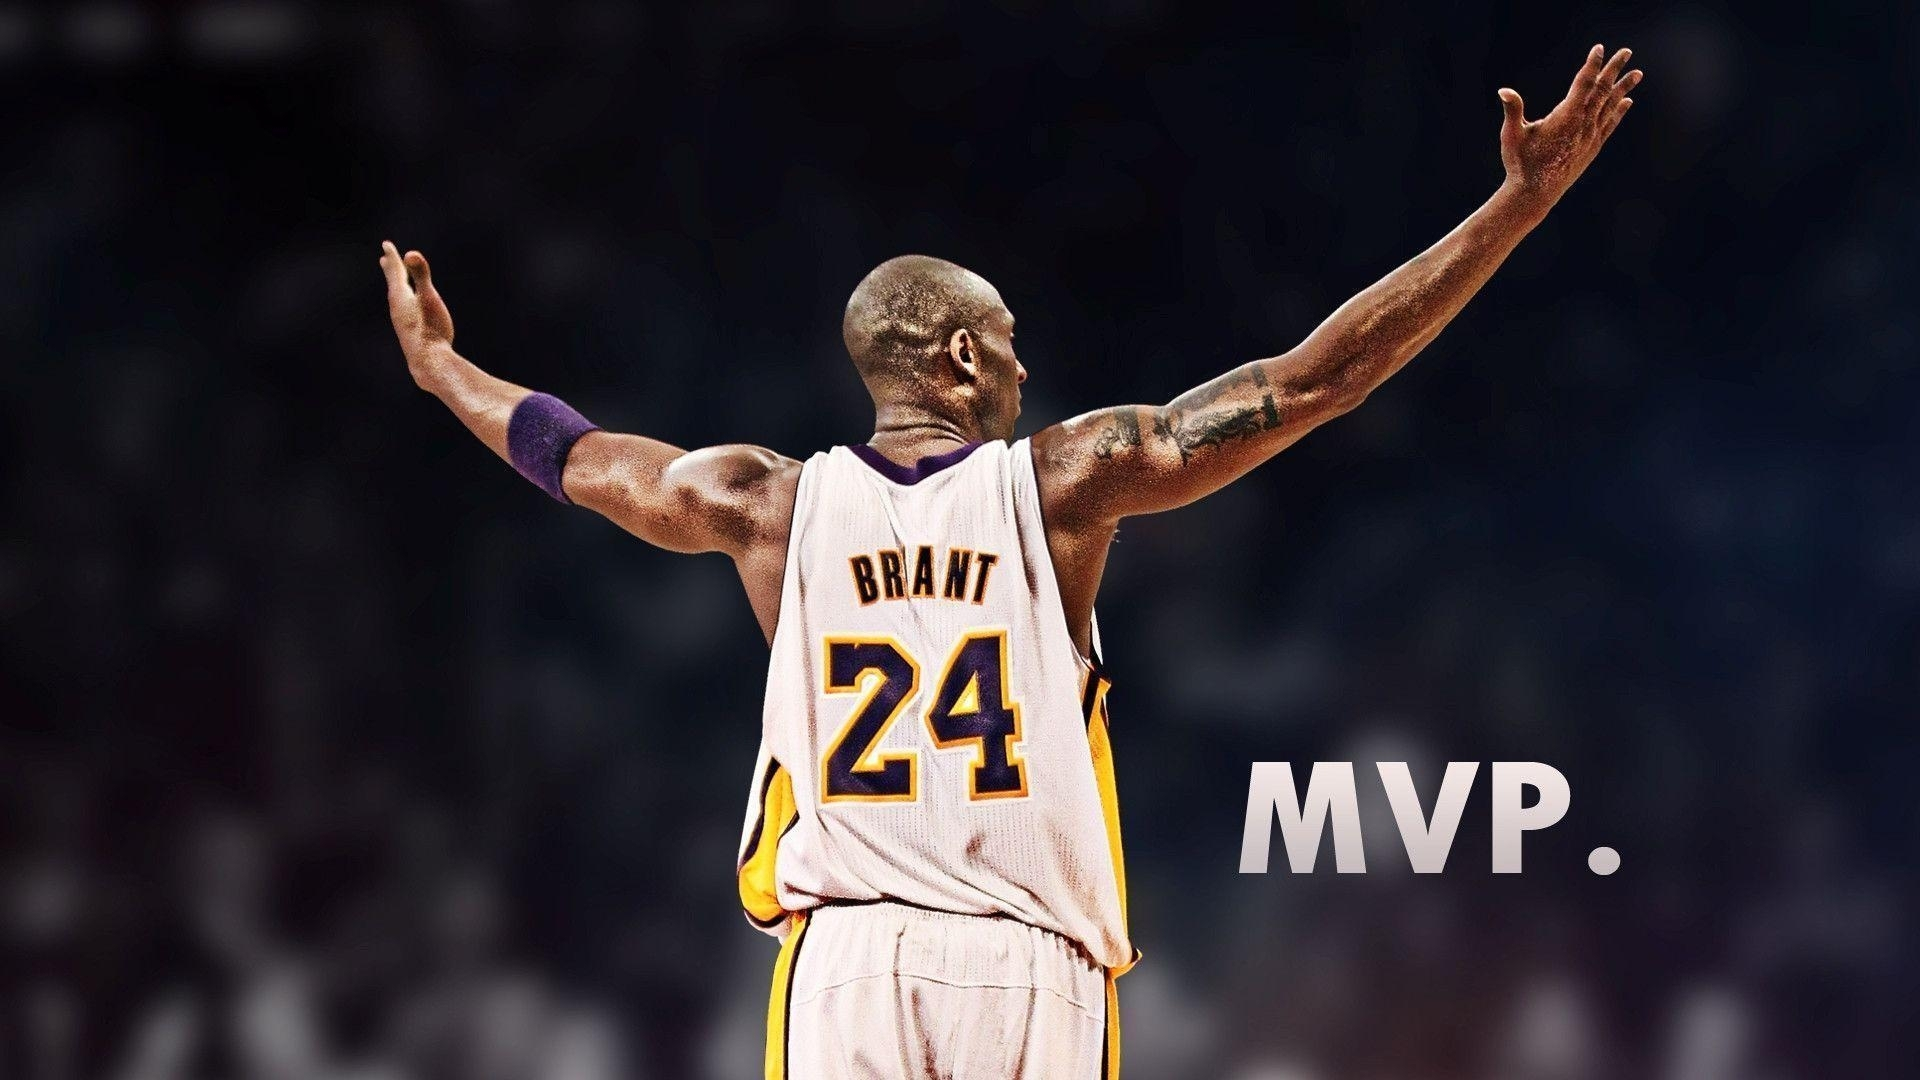 kobe bryant wallpapers hd 2017 - wallpaper cave